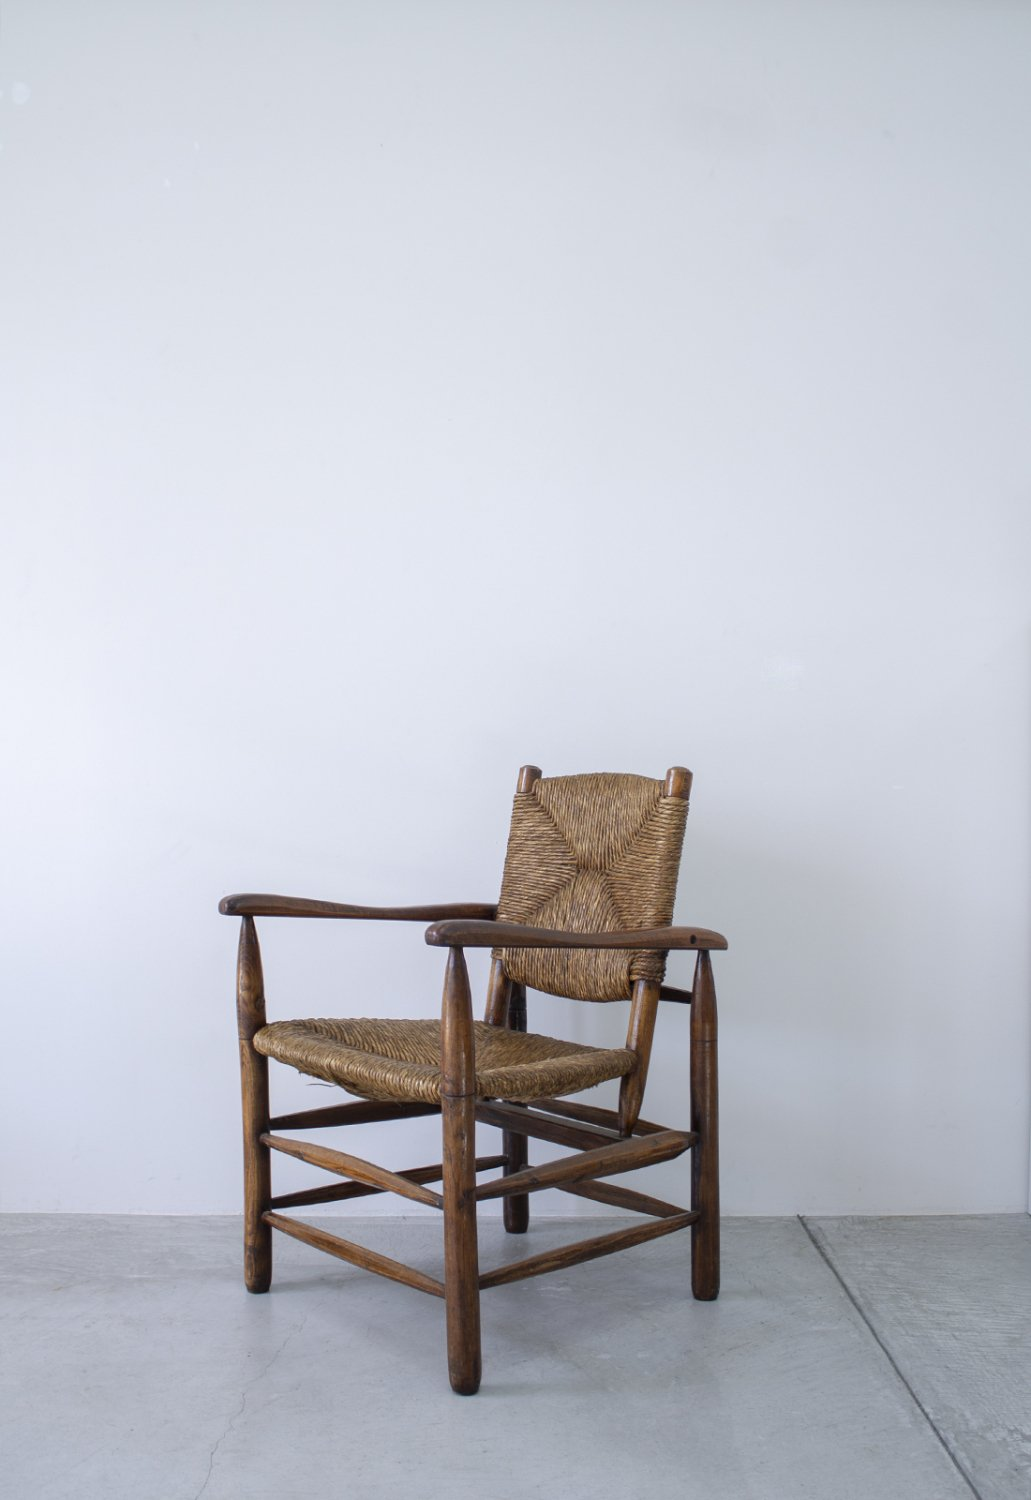 Charlotte Perriand -Arm chair